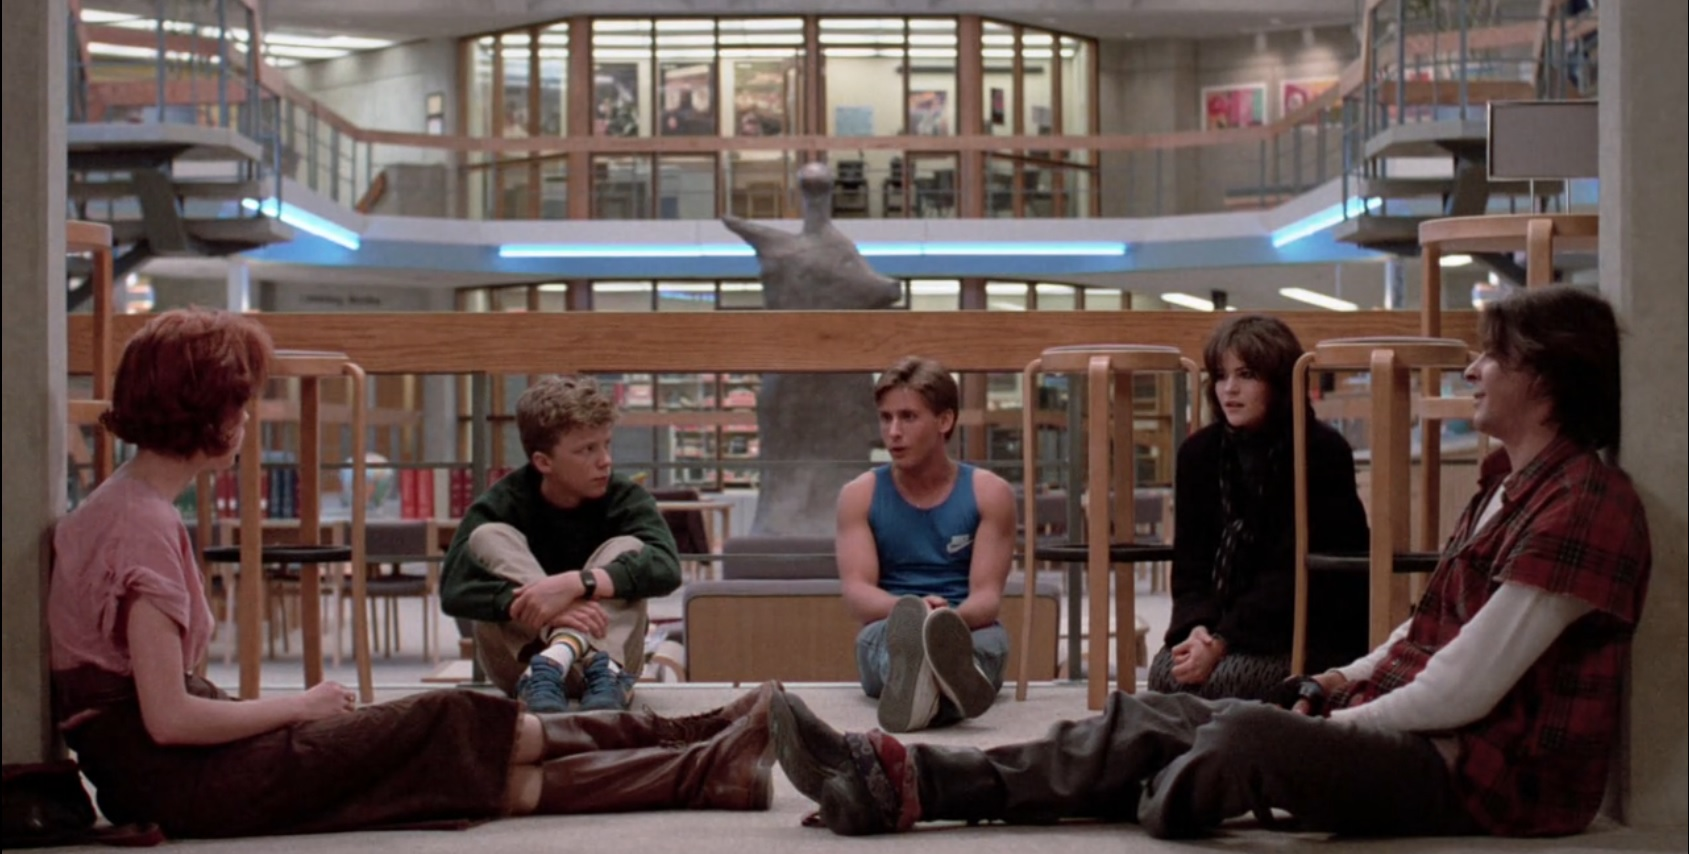 Molly Ringwald, Anthony Michael Hall, Emilio Estevez, Ally Sheedy, and Judd Nelson in The Breakfast Club (1985). Claire, Brian, Andrew, Allison, an awkward punk girl with dark hair falling over her face, wearing all black, and Bender, a boy with long brown hair wearing a red plaid shirt with cutoff sleeves and baggy khaki pants, are all sitting on the floor of the school library during detention, having a sober conversation.